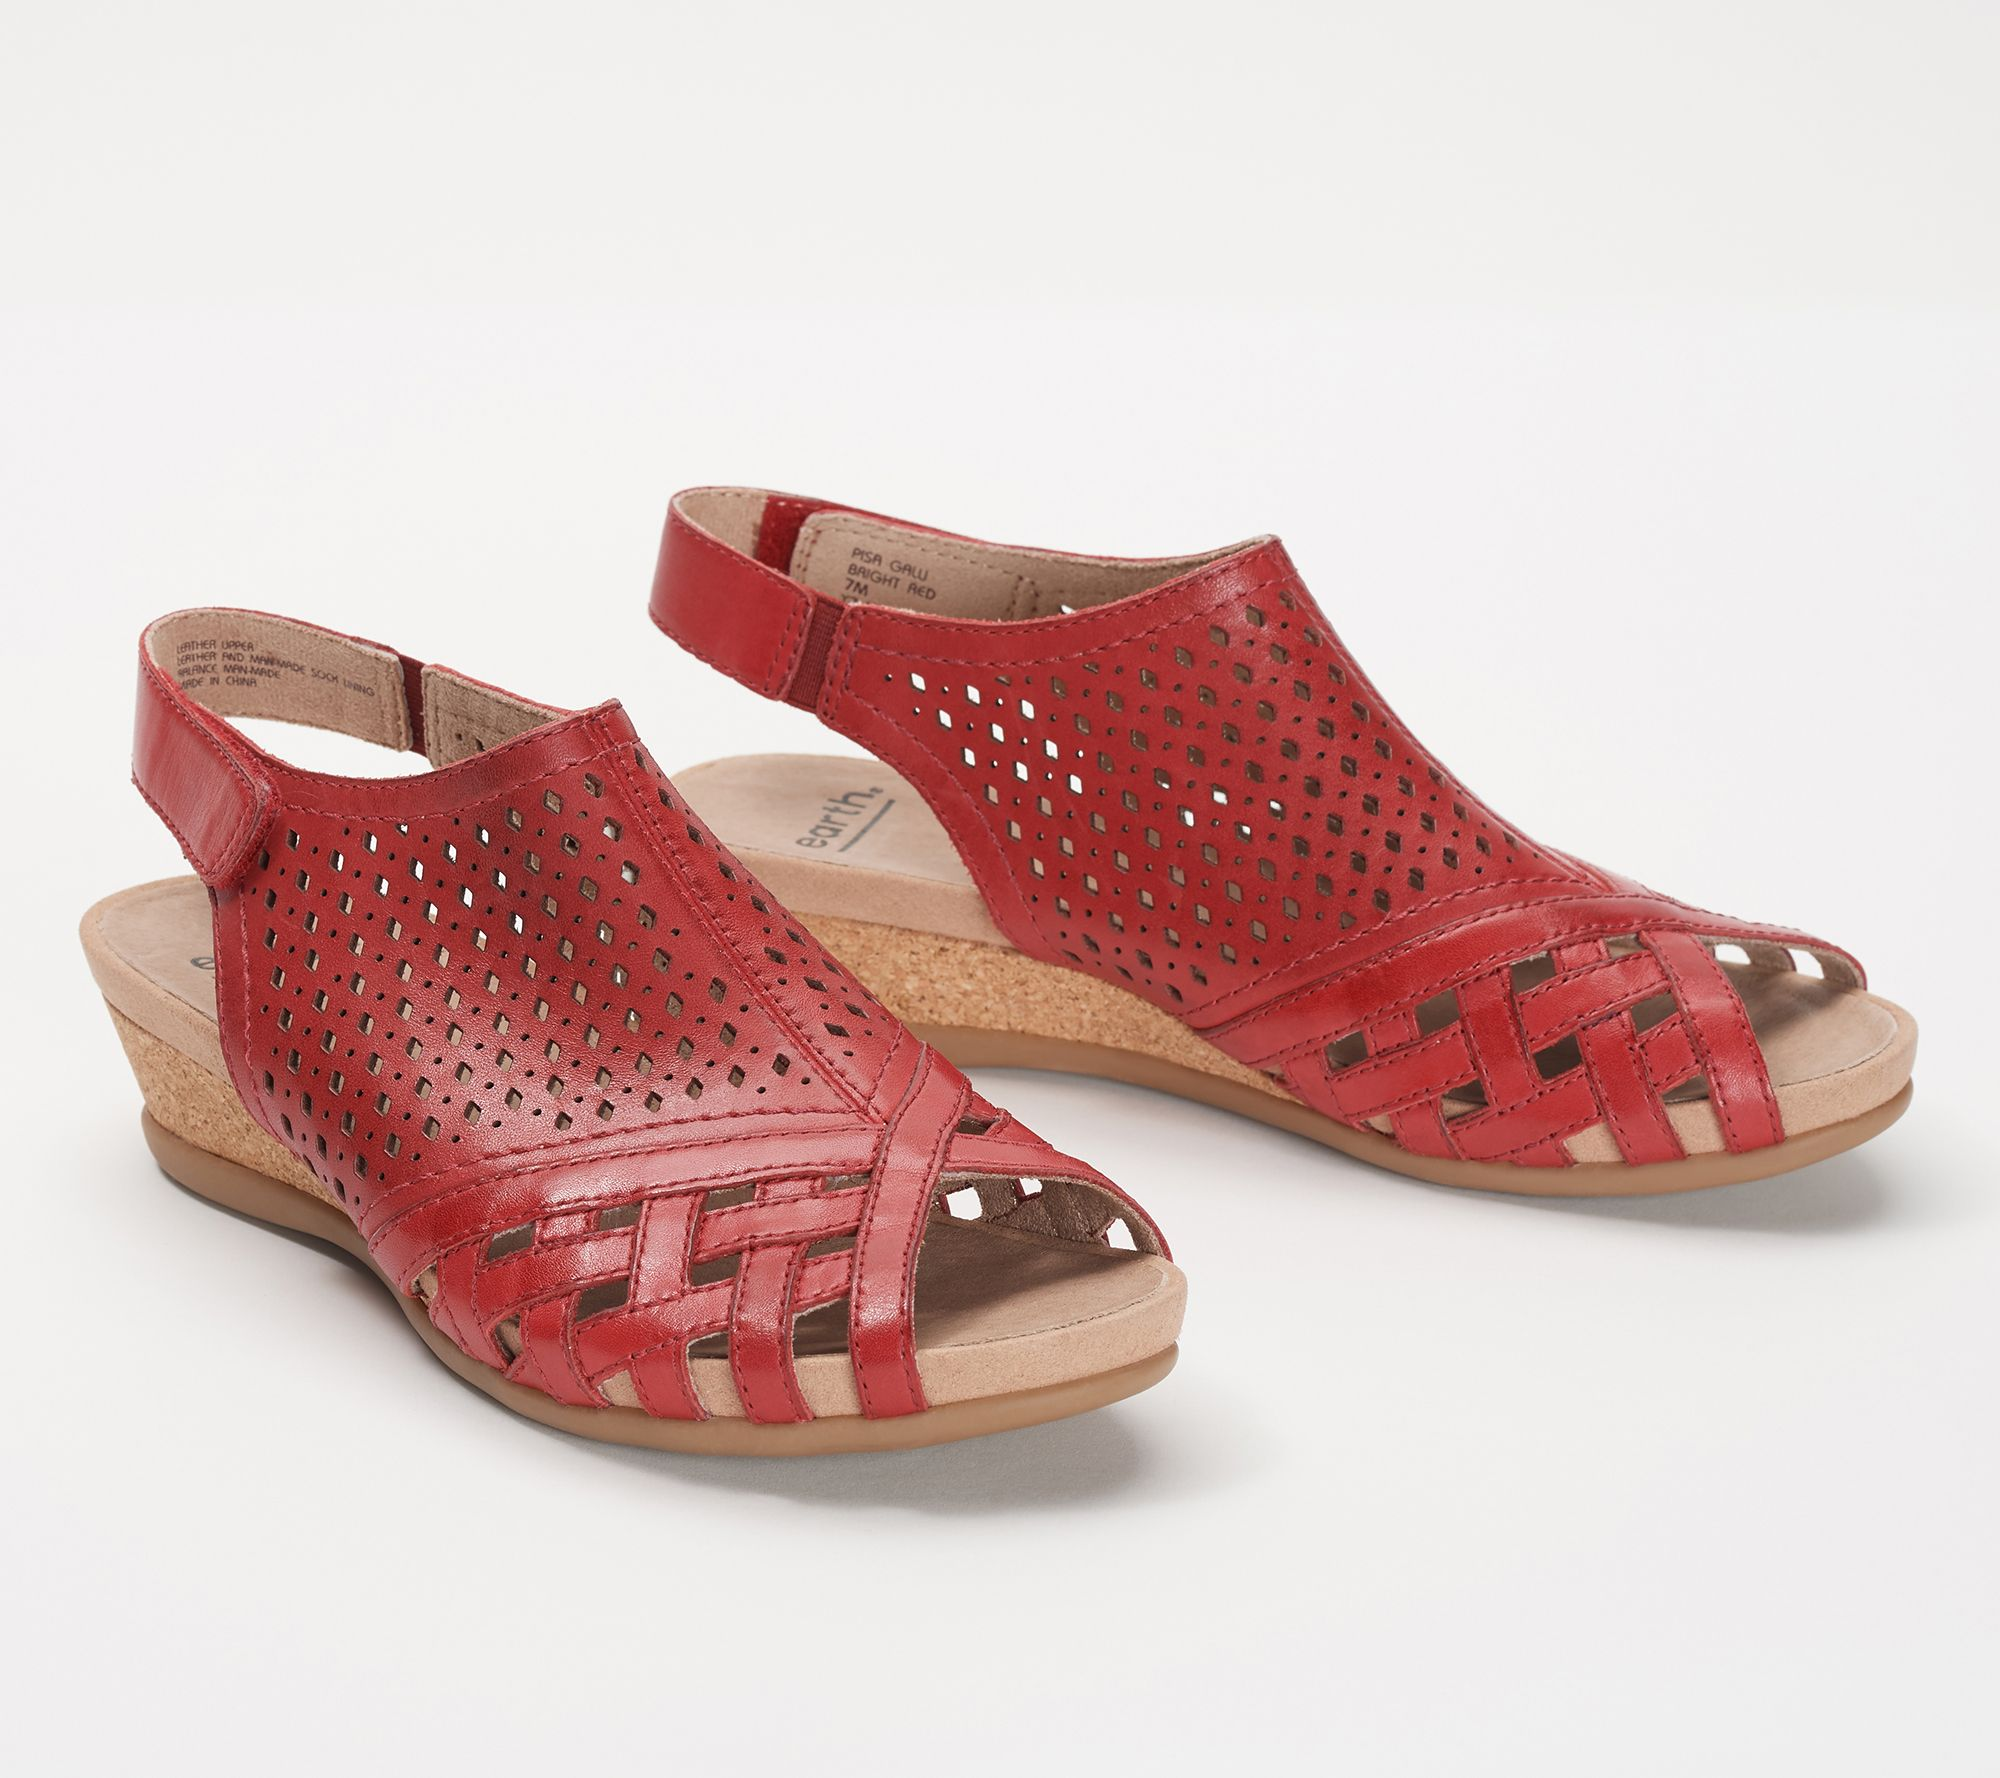 28d49e8adbec Earth Leather Perforated Wedge Sandals- Pisa Galli - Page 1 — QVC.com